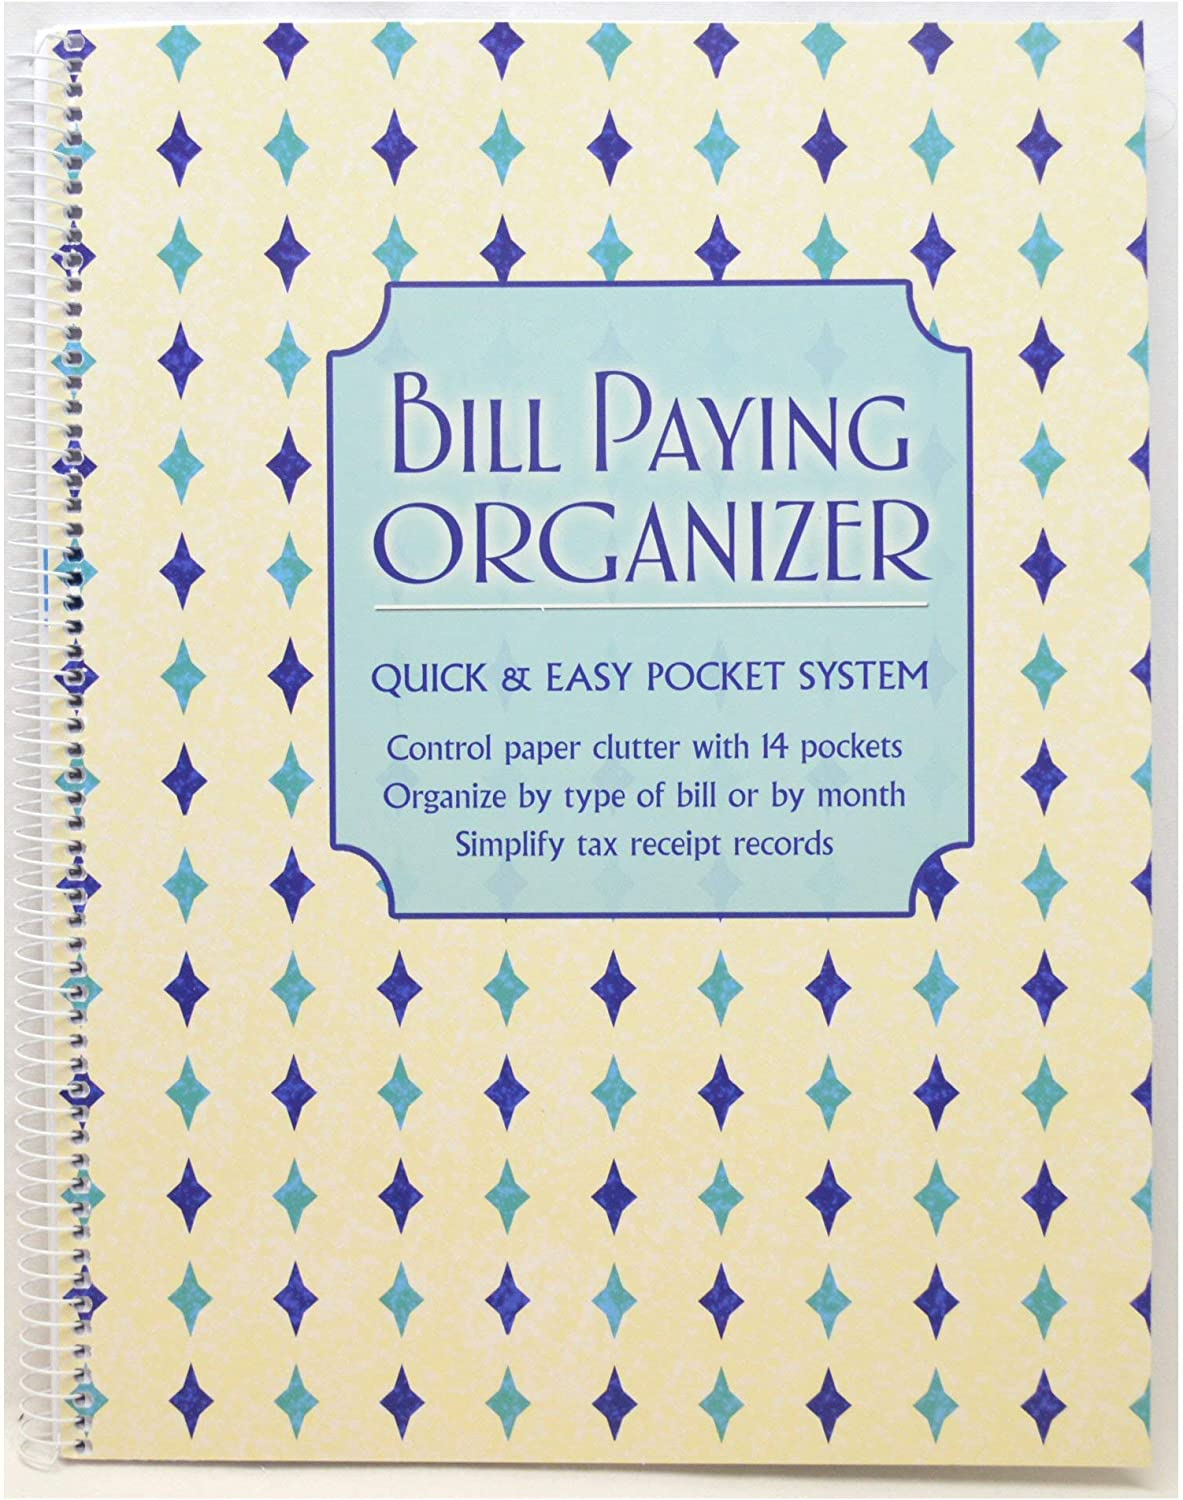 Monthly Bill Paying Organizing Organizer Budget Book with Pockets - Includes Get Out of Debt Tips - Mosaic